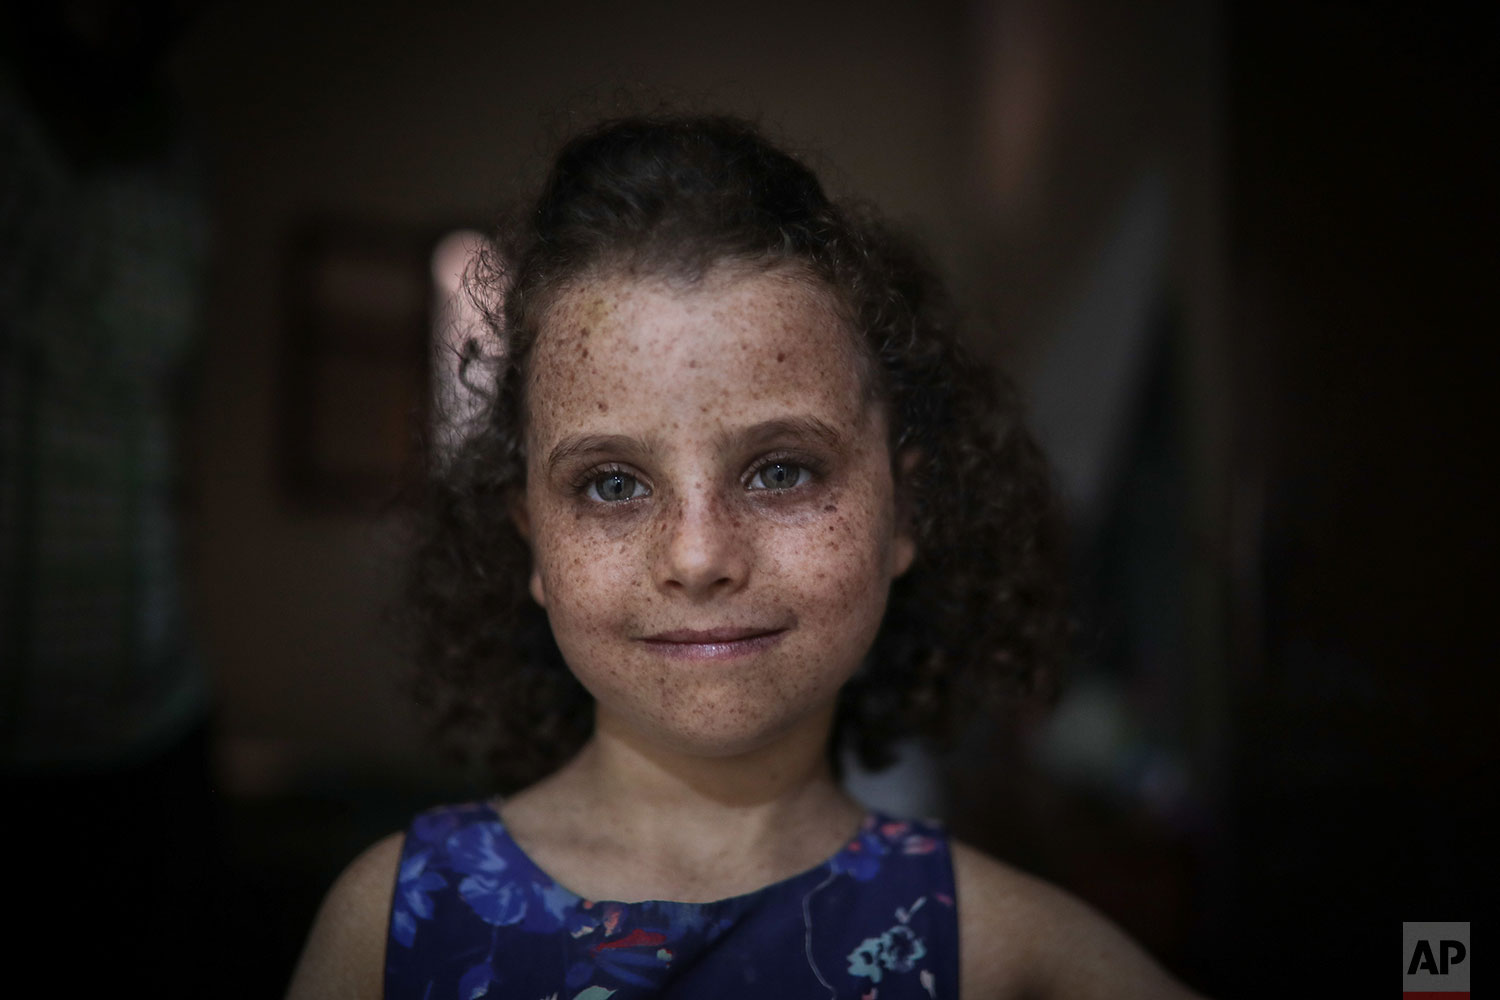 In this Tuesday, July 23, 2019 photo, Romaisae, 6, who is affected by a rare disorder called xeroderma pigmentosum, or XP, poses for a portrait in her home in the town of Sale, near Rabat, Morocco. (AP Photo/Mosa'ab Elshamy)